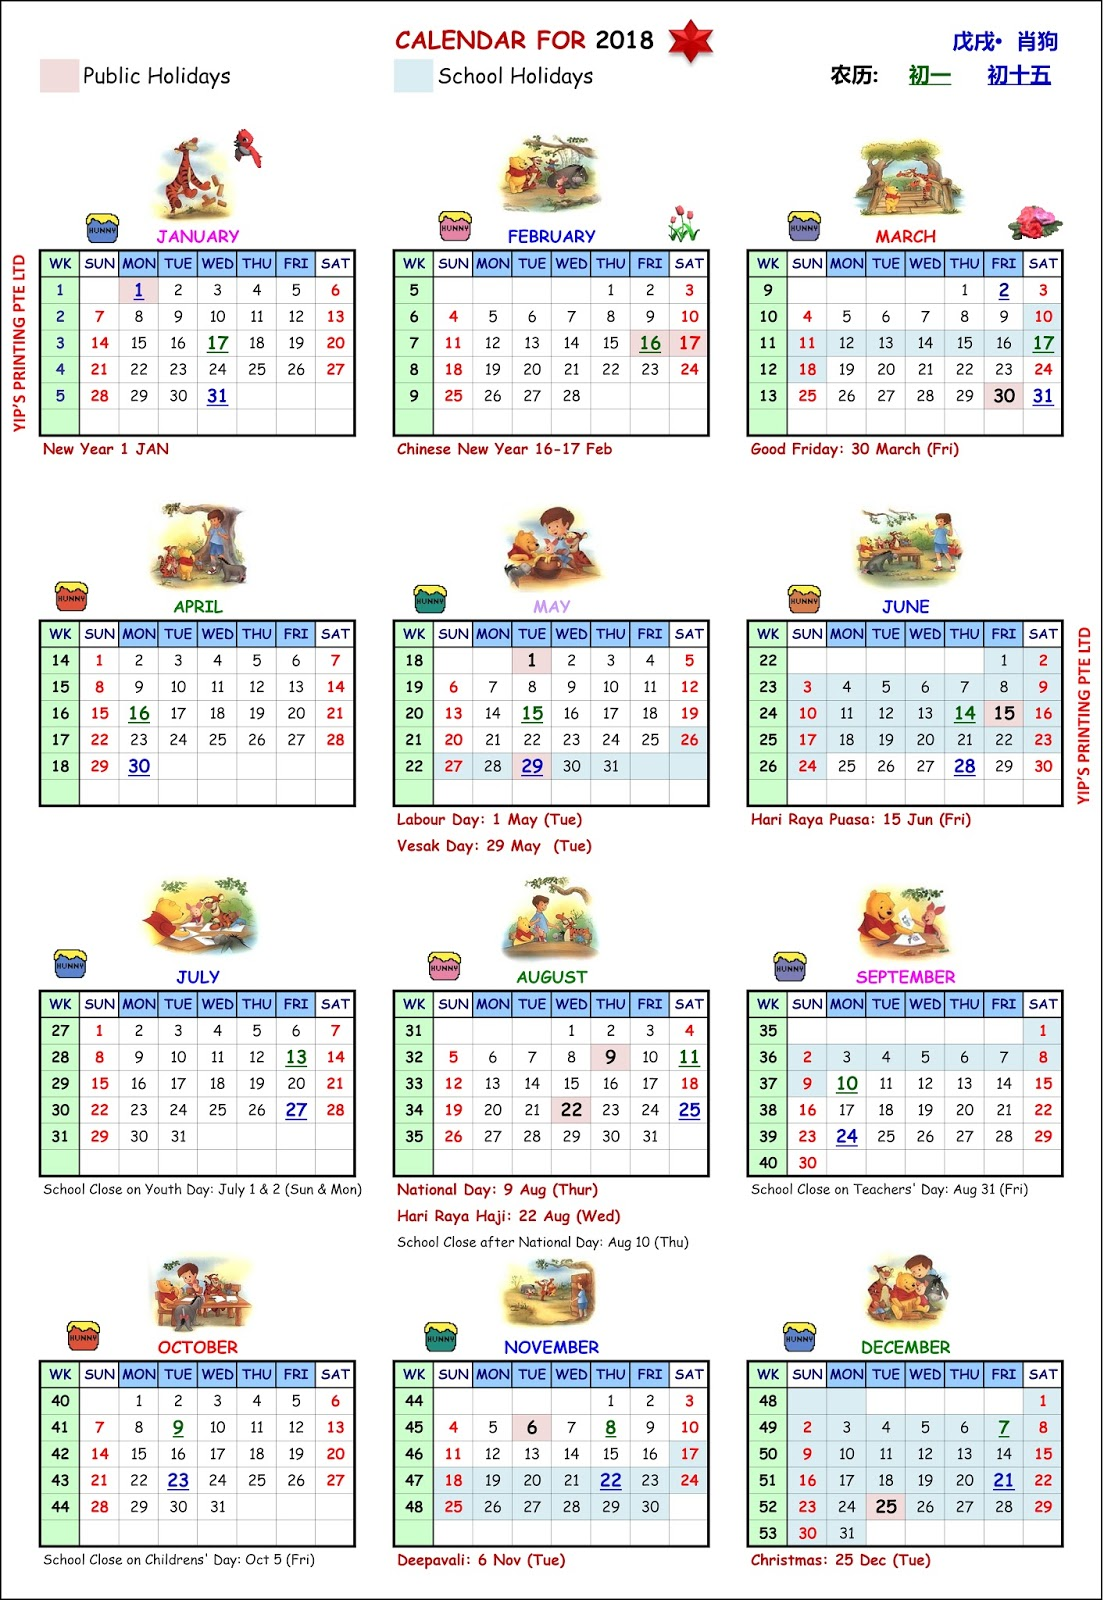 School Calendar Singapore 2018 : School holidays in singapore lifehacked st